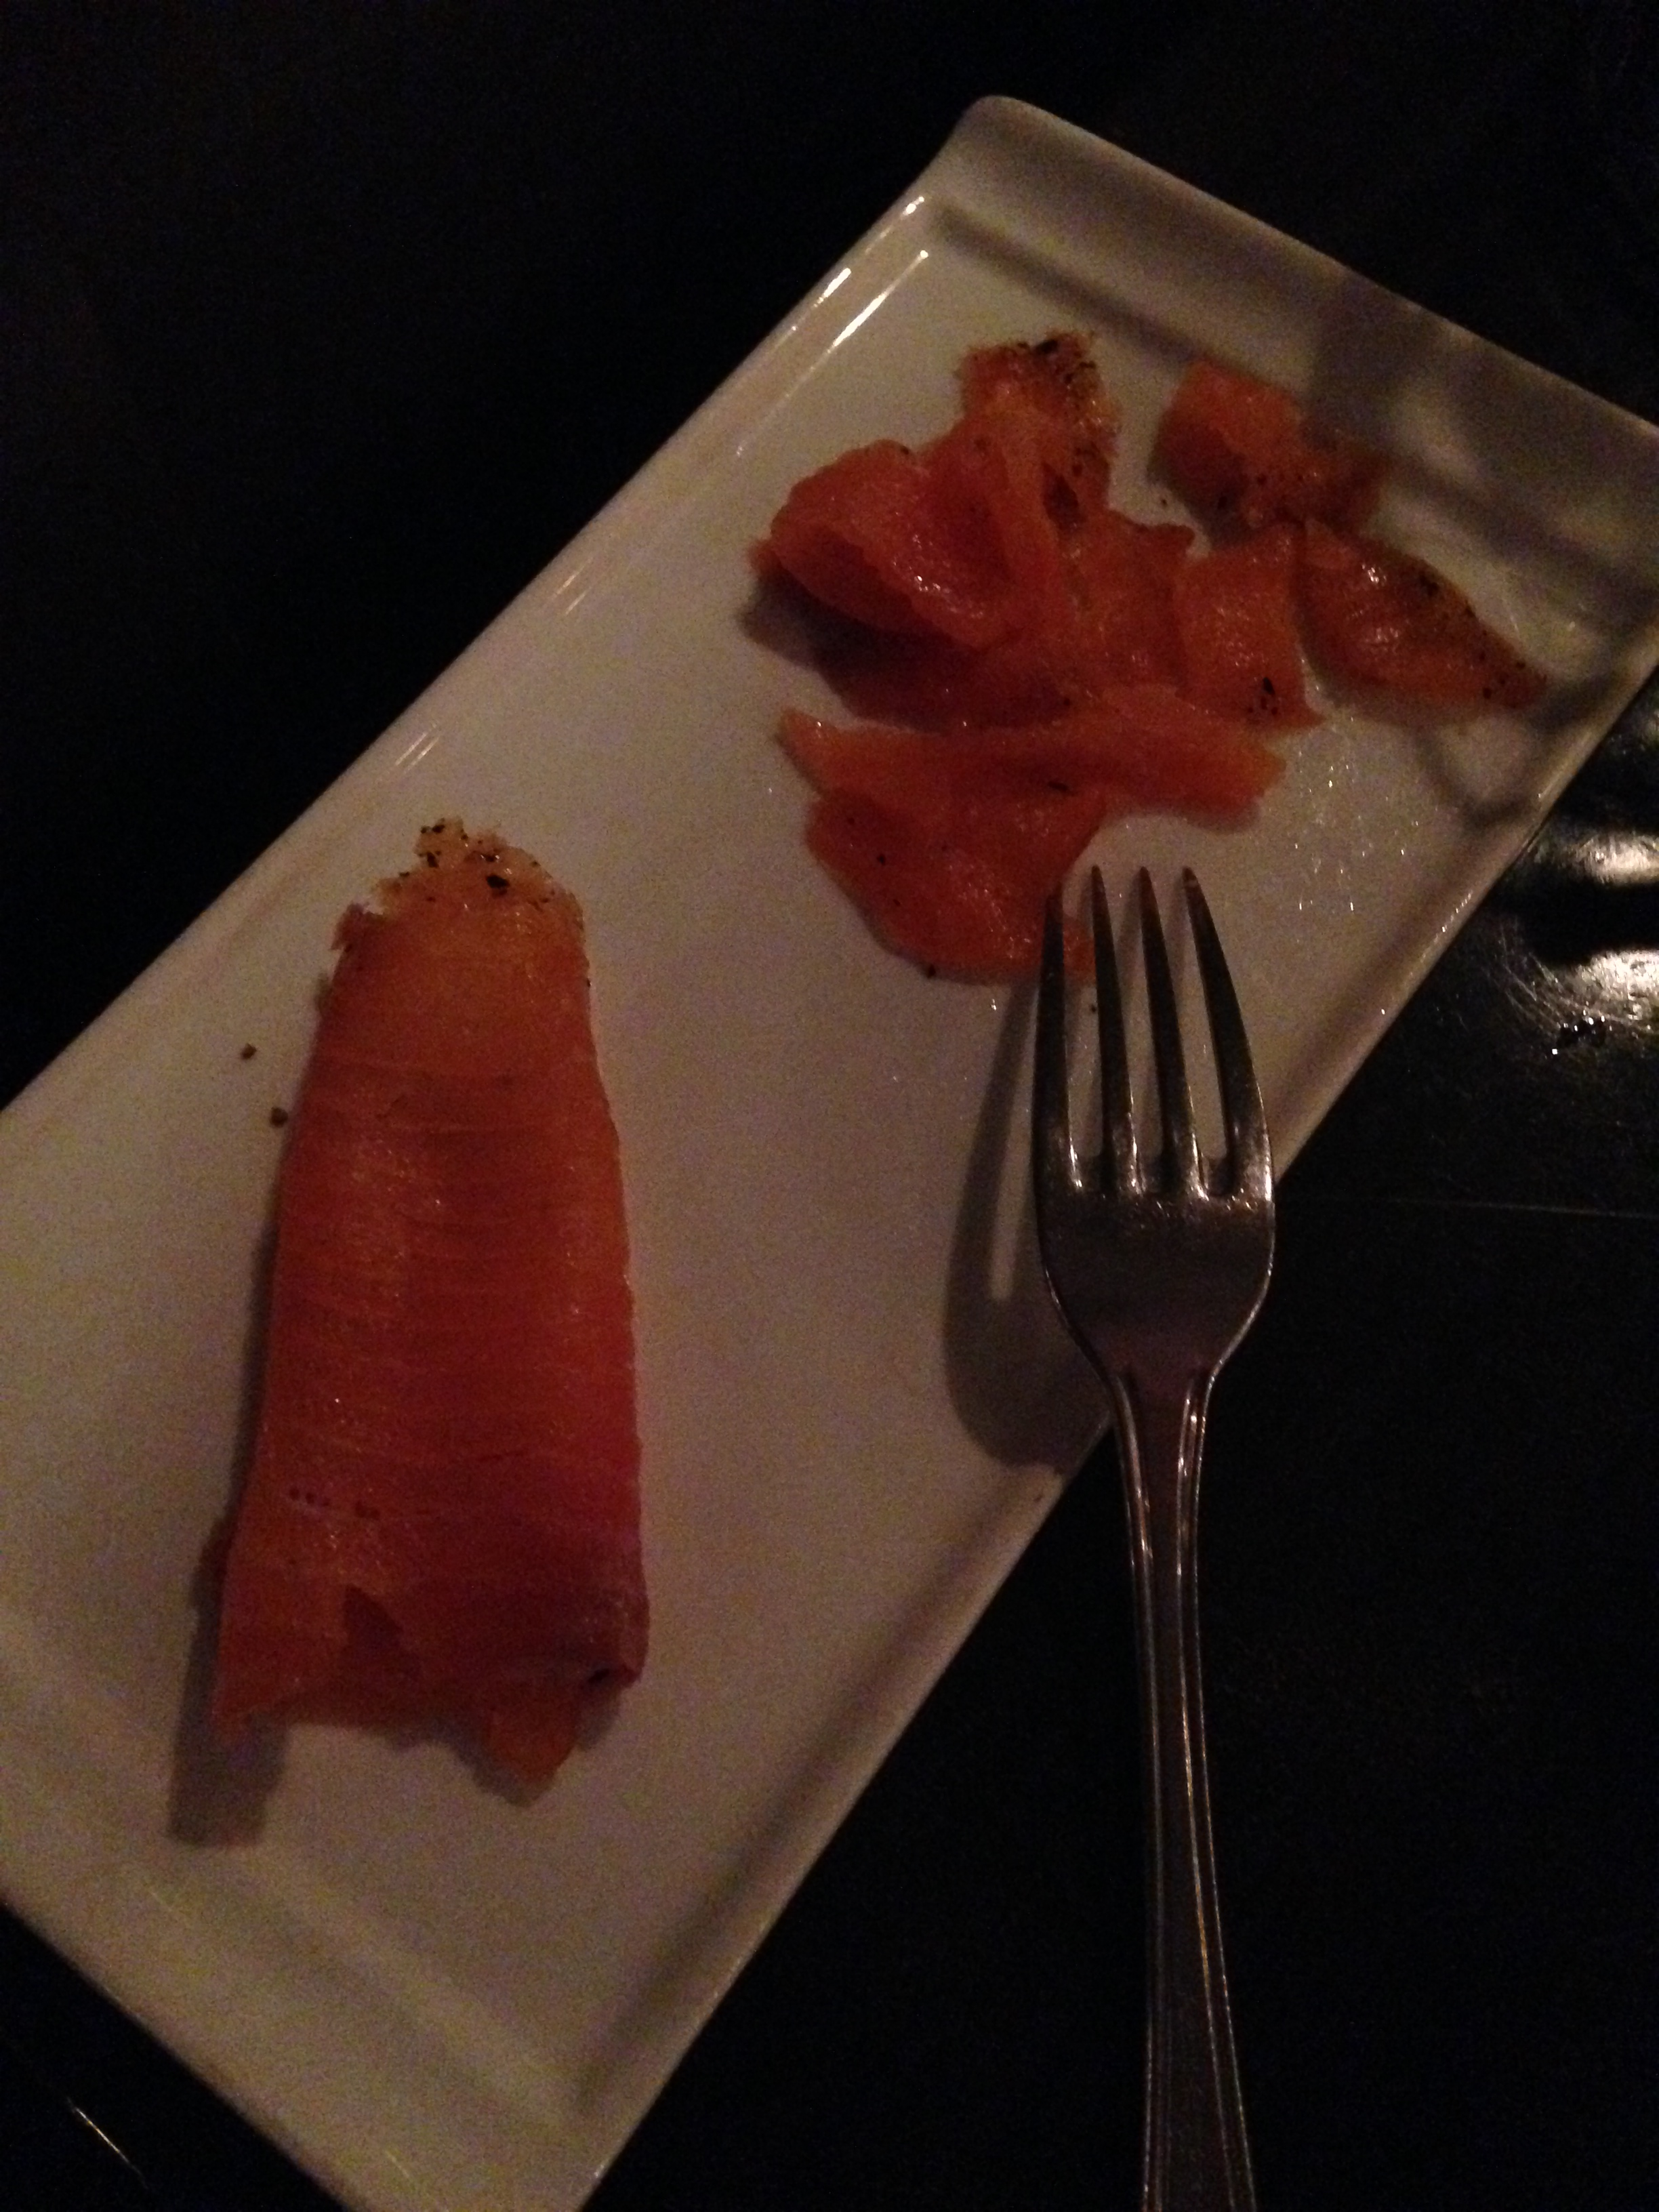 They were gracious to serve the salmon from Rich's salad on the side for me to enjoy instead!